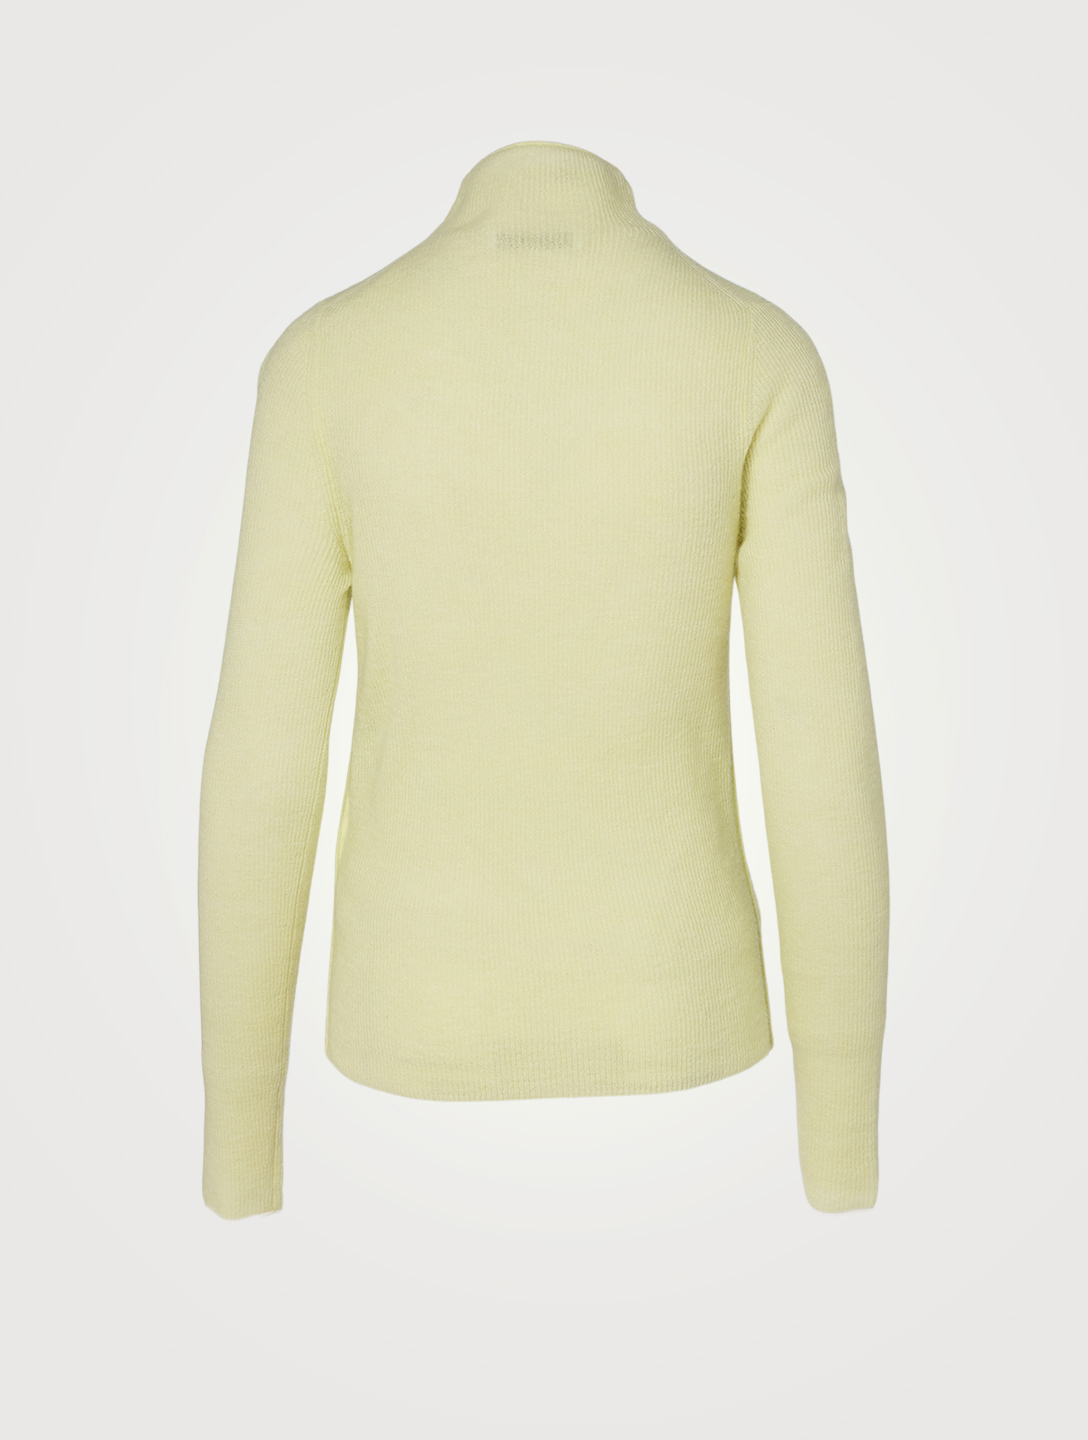 ACNE STUDIOS Alpaca And Wool Turtleneck Sweater Women's Yellow